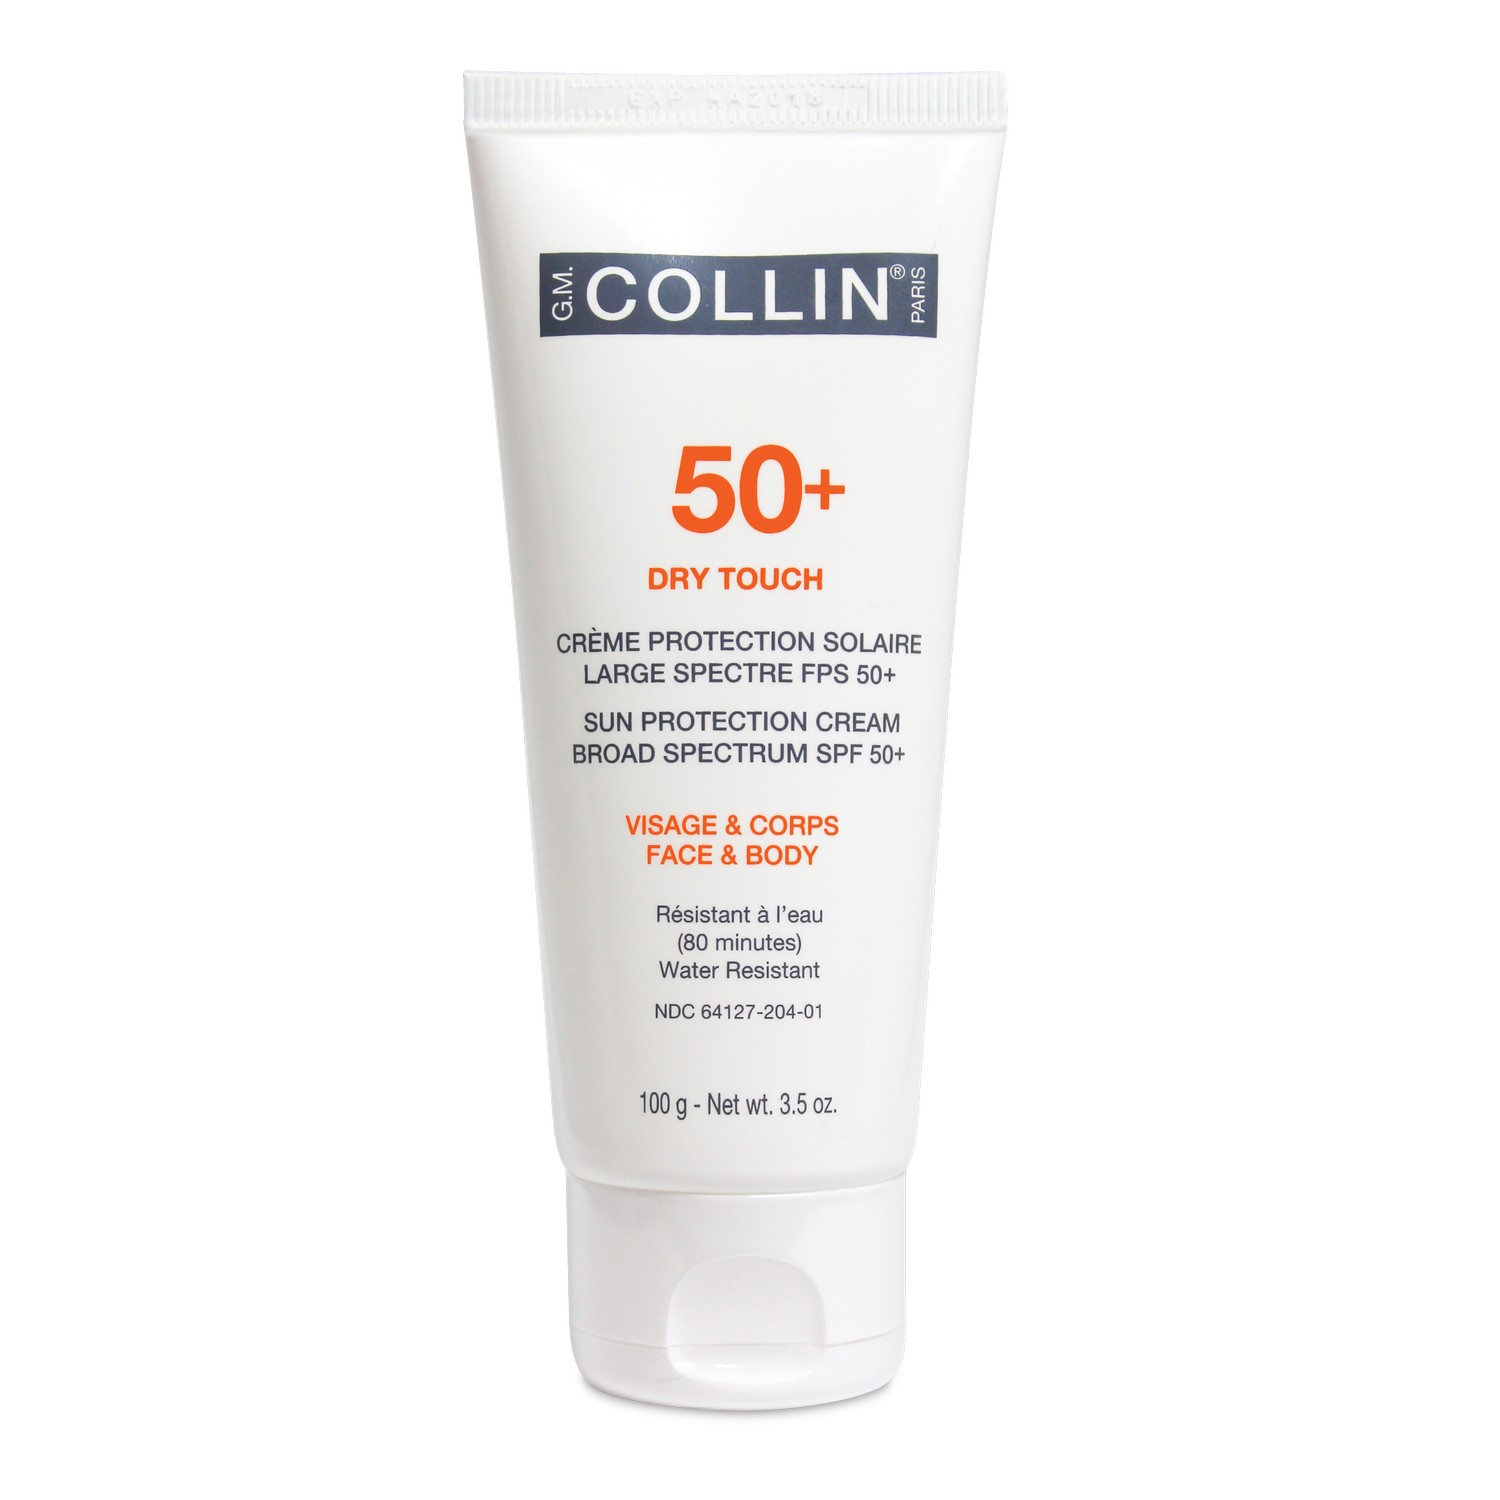 GM Collin Skincare 50+ DRY TOUCH (100 g / 3.5 oz)